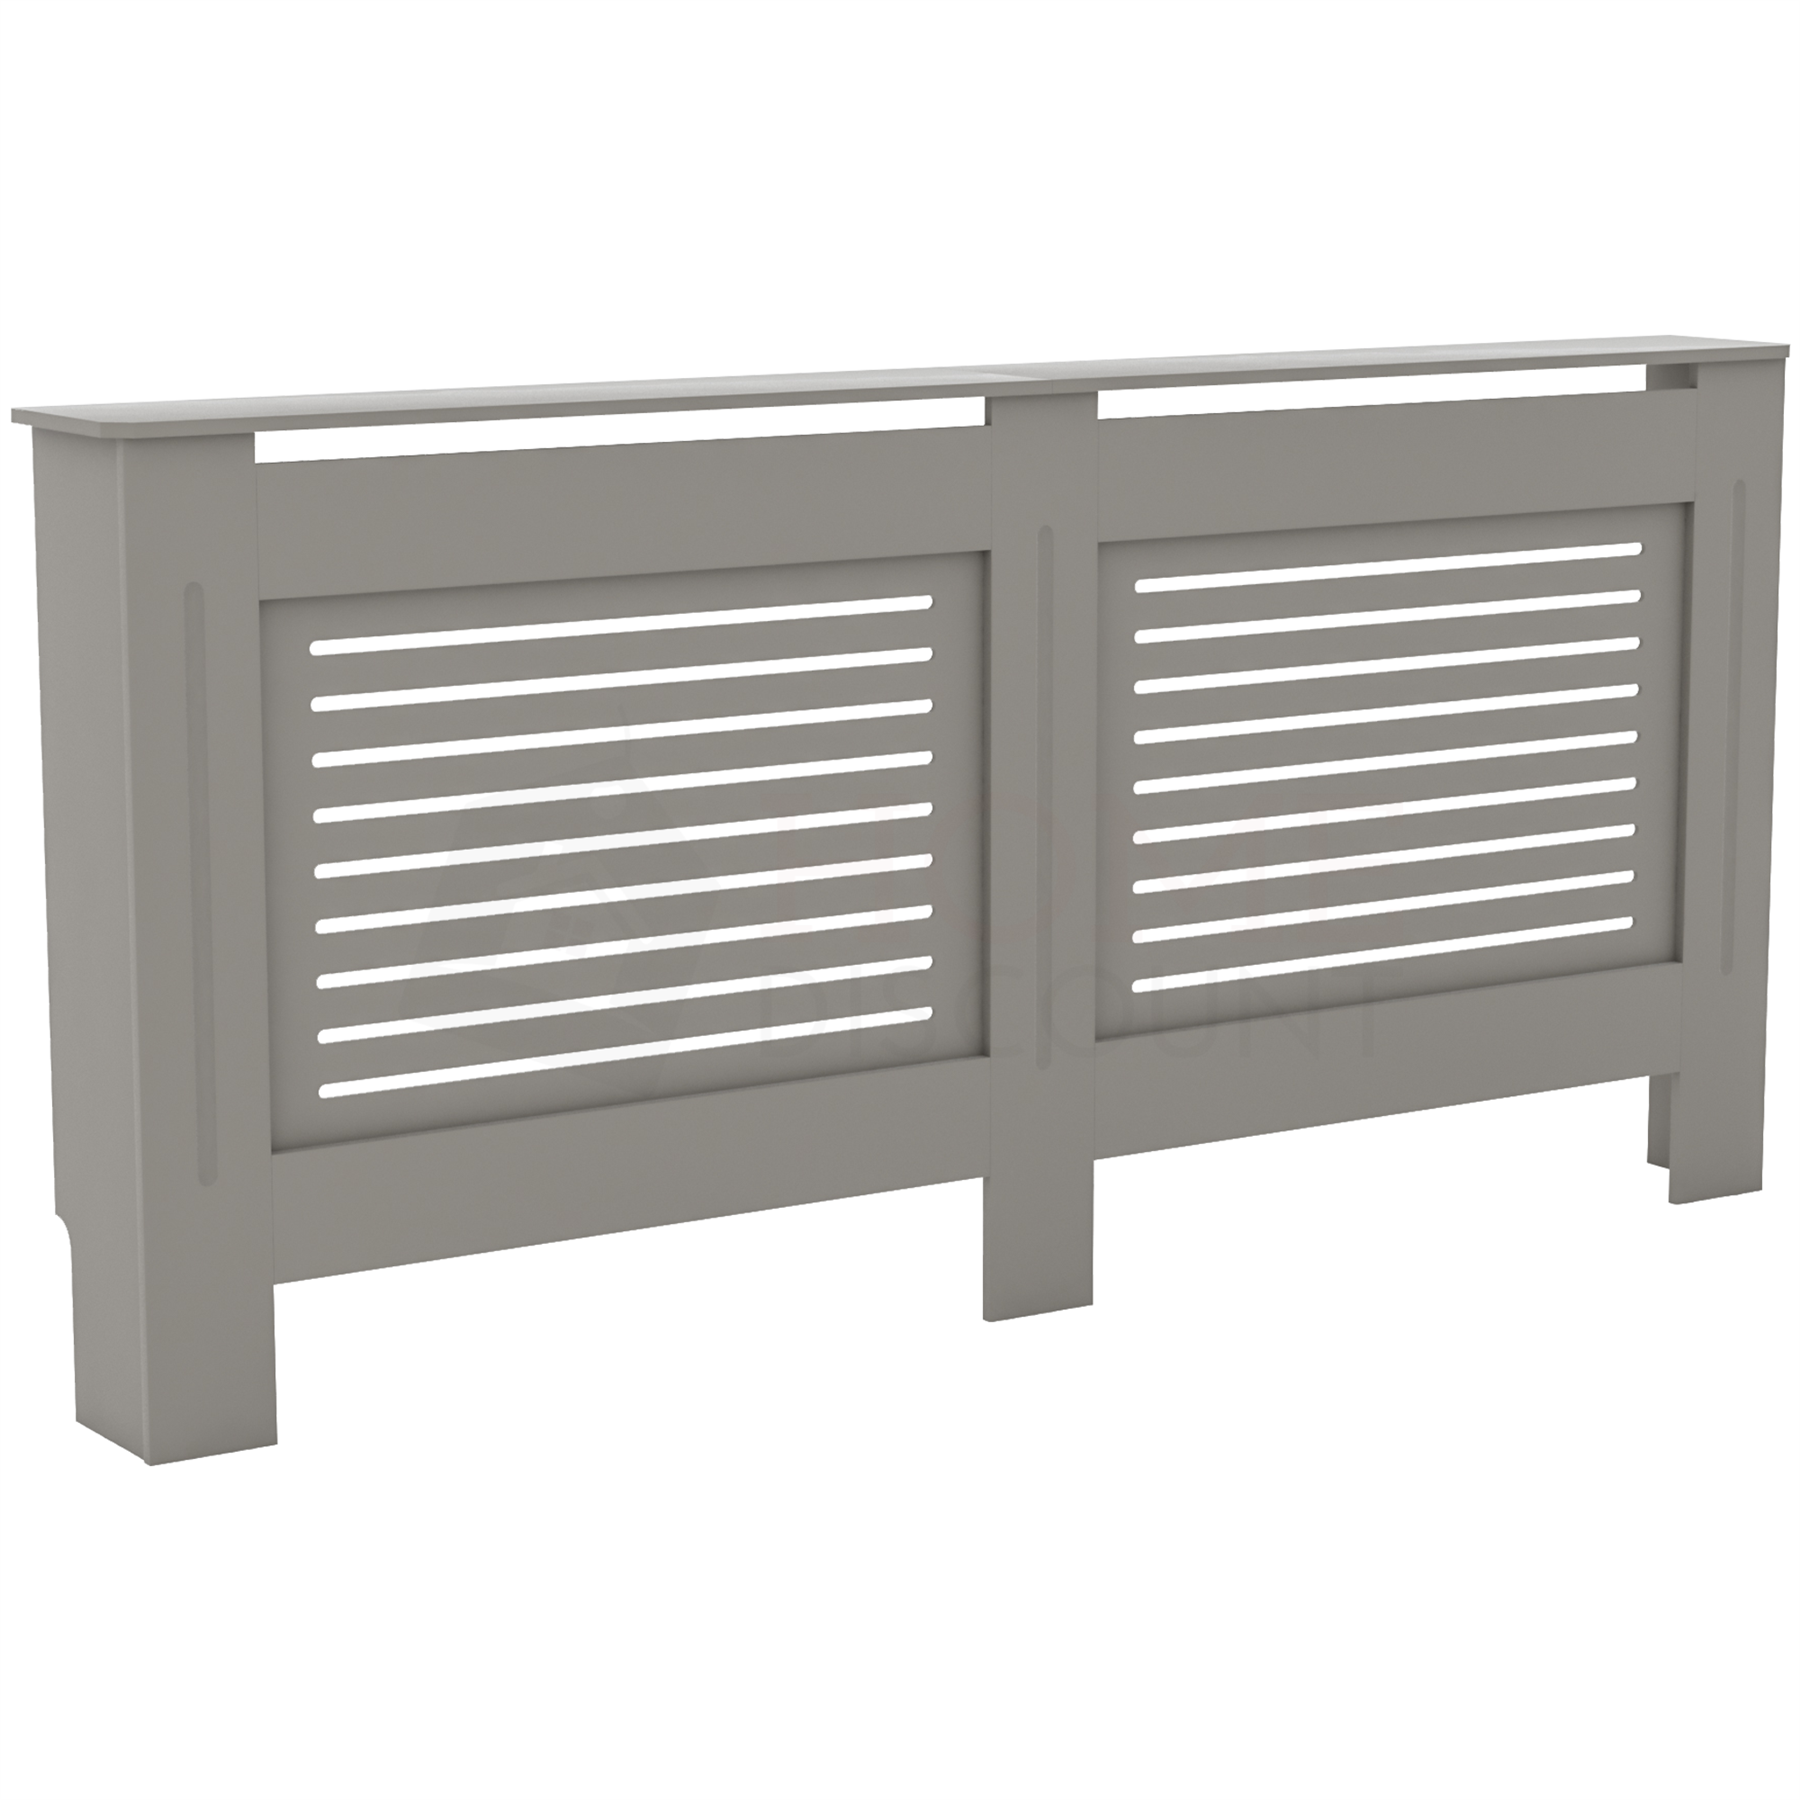 Radiateur-Housse-Blanc-inachevee-MODERNE-BOIS-TRADITIONNELLE-Grill-cabinet-furniture miniature 185